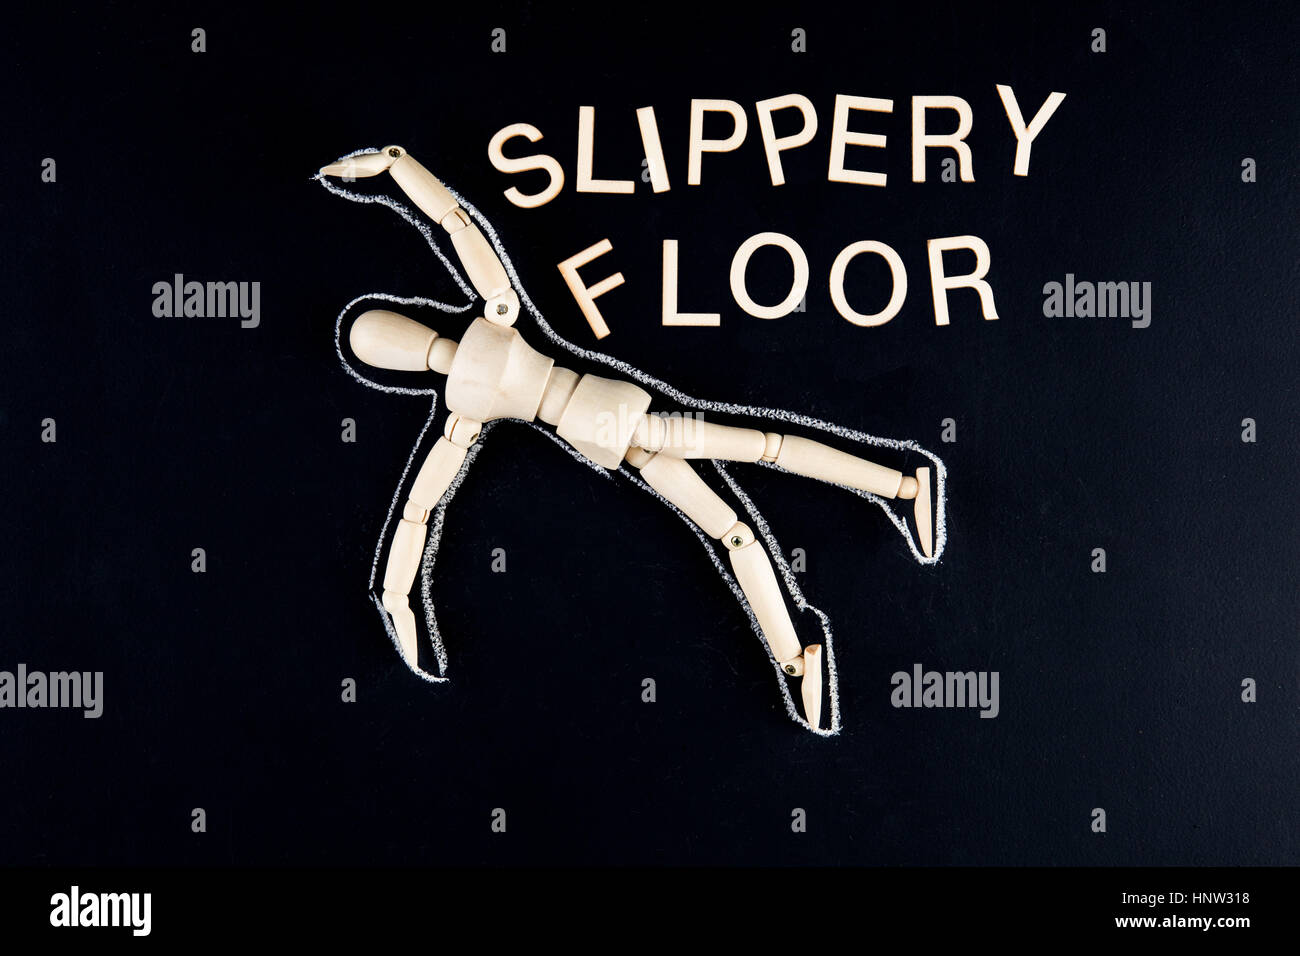 wooden dummy figurine laying on the floor with chalk outline  and 'slippery floor' text - Stock Image